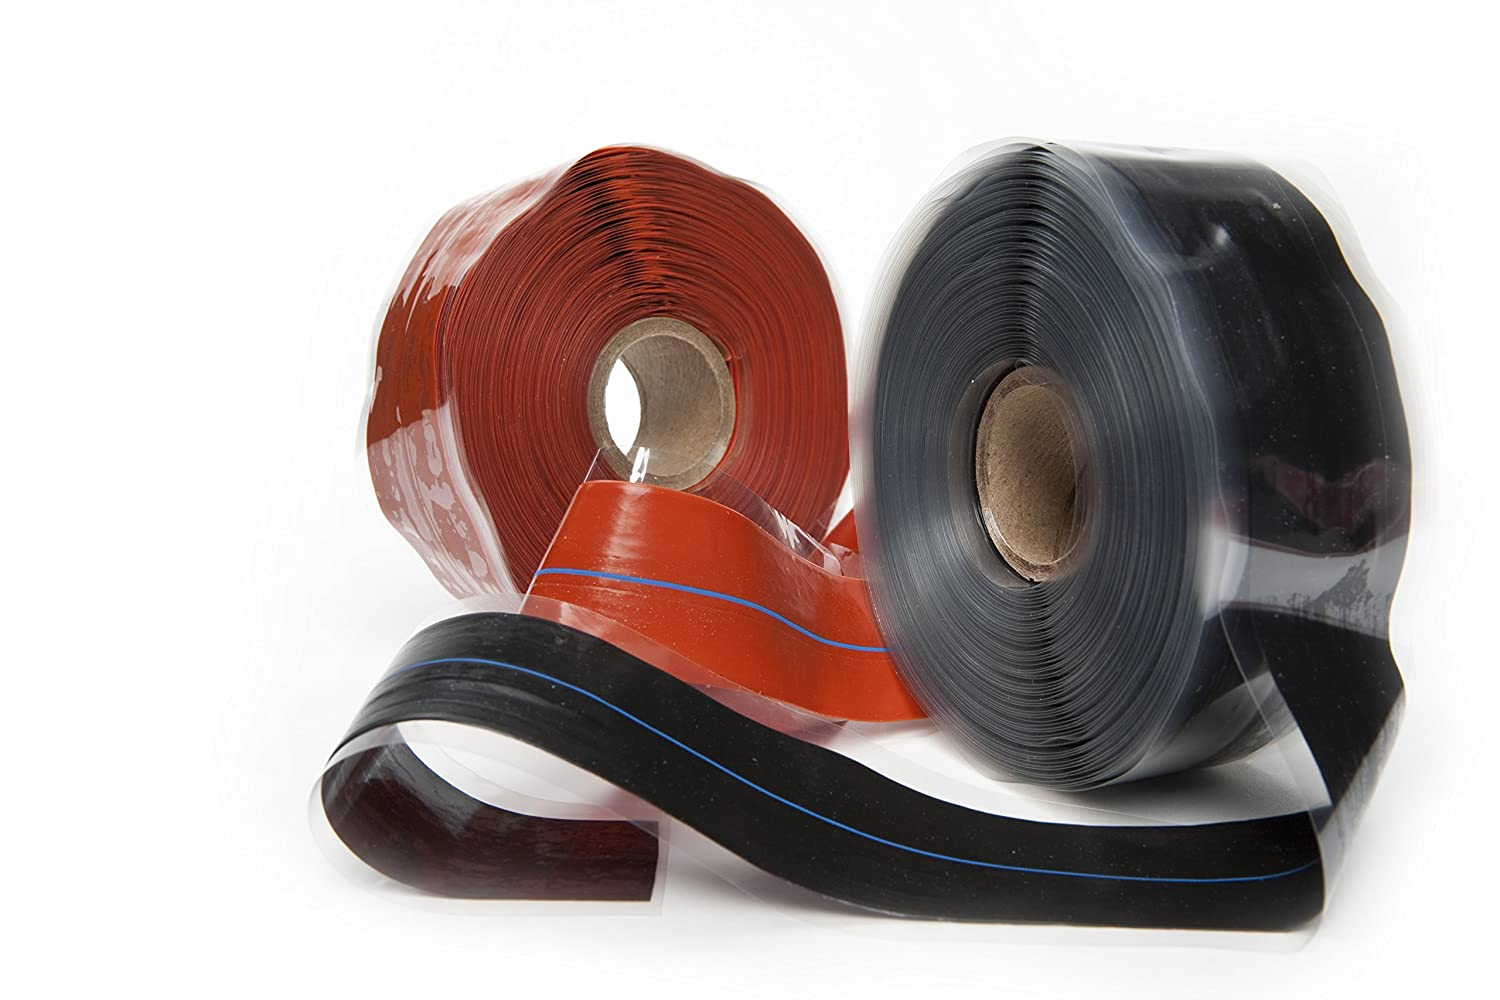 F4 Tape Self Fusing Silicone Mil Spec 1 X 36 Black Aerospace Wire Harness Tracer Electrical Industrial Scientific